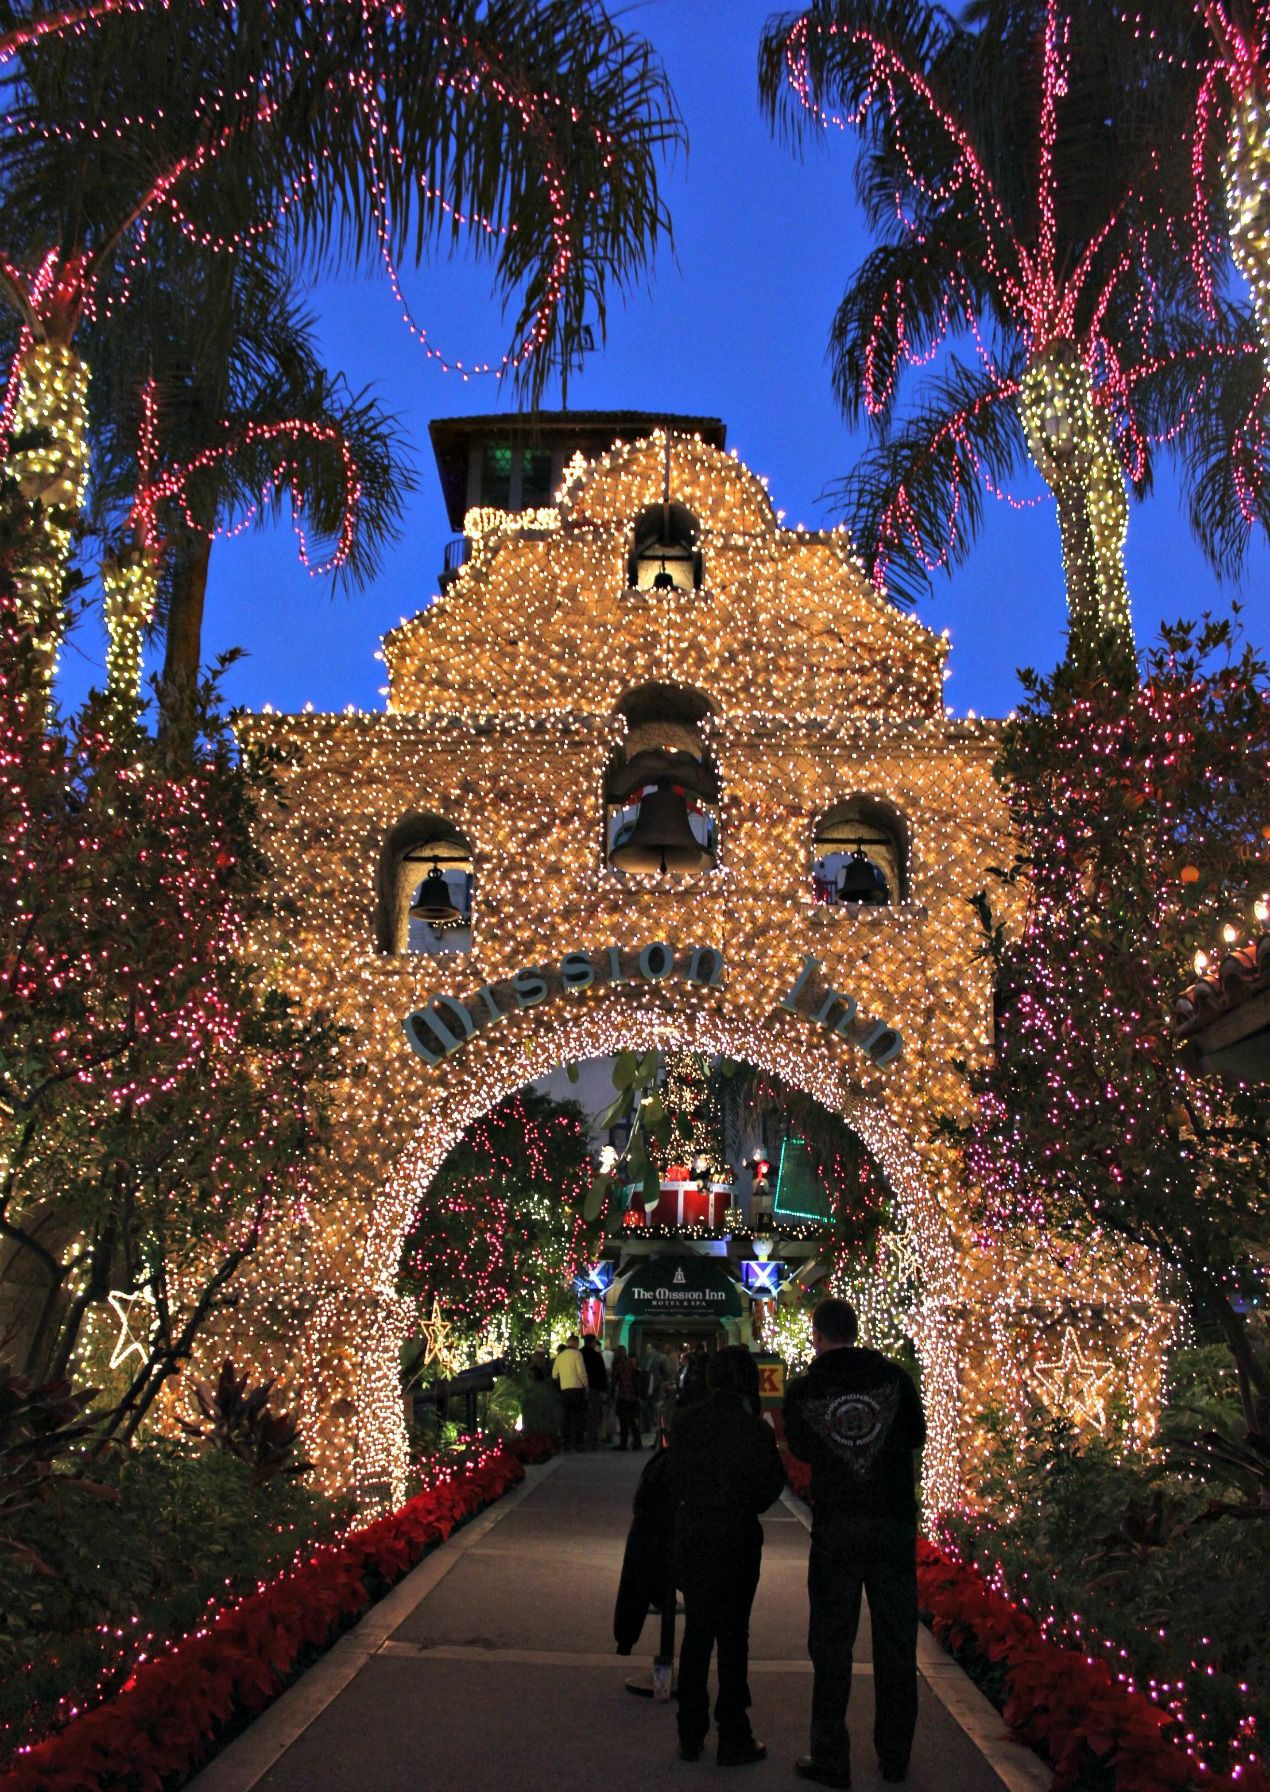 The Mission Inn Festival Lights is an iconic celebration of lights food entertainment + holiday cheer near the iconic Mission Inn happening until Jan. & Riverside Local: Mission Inn Festival of Lights | Festival lights azcodes.com